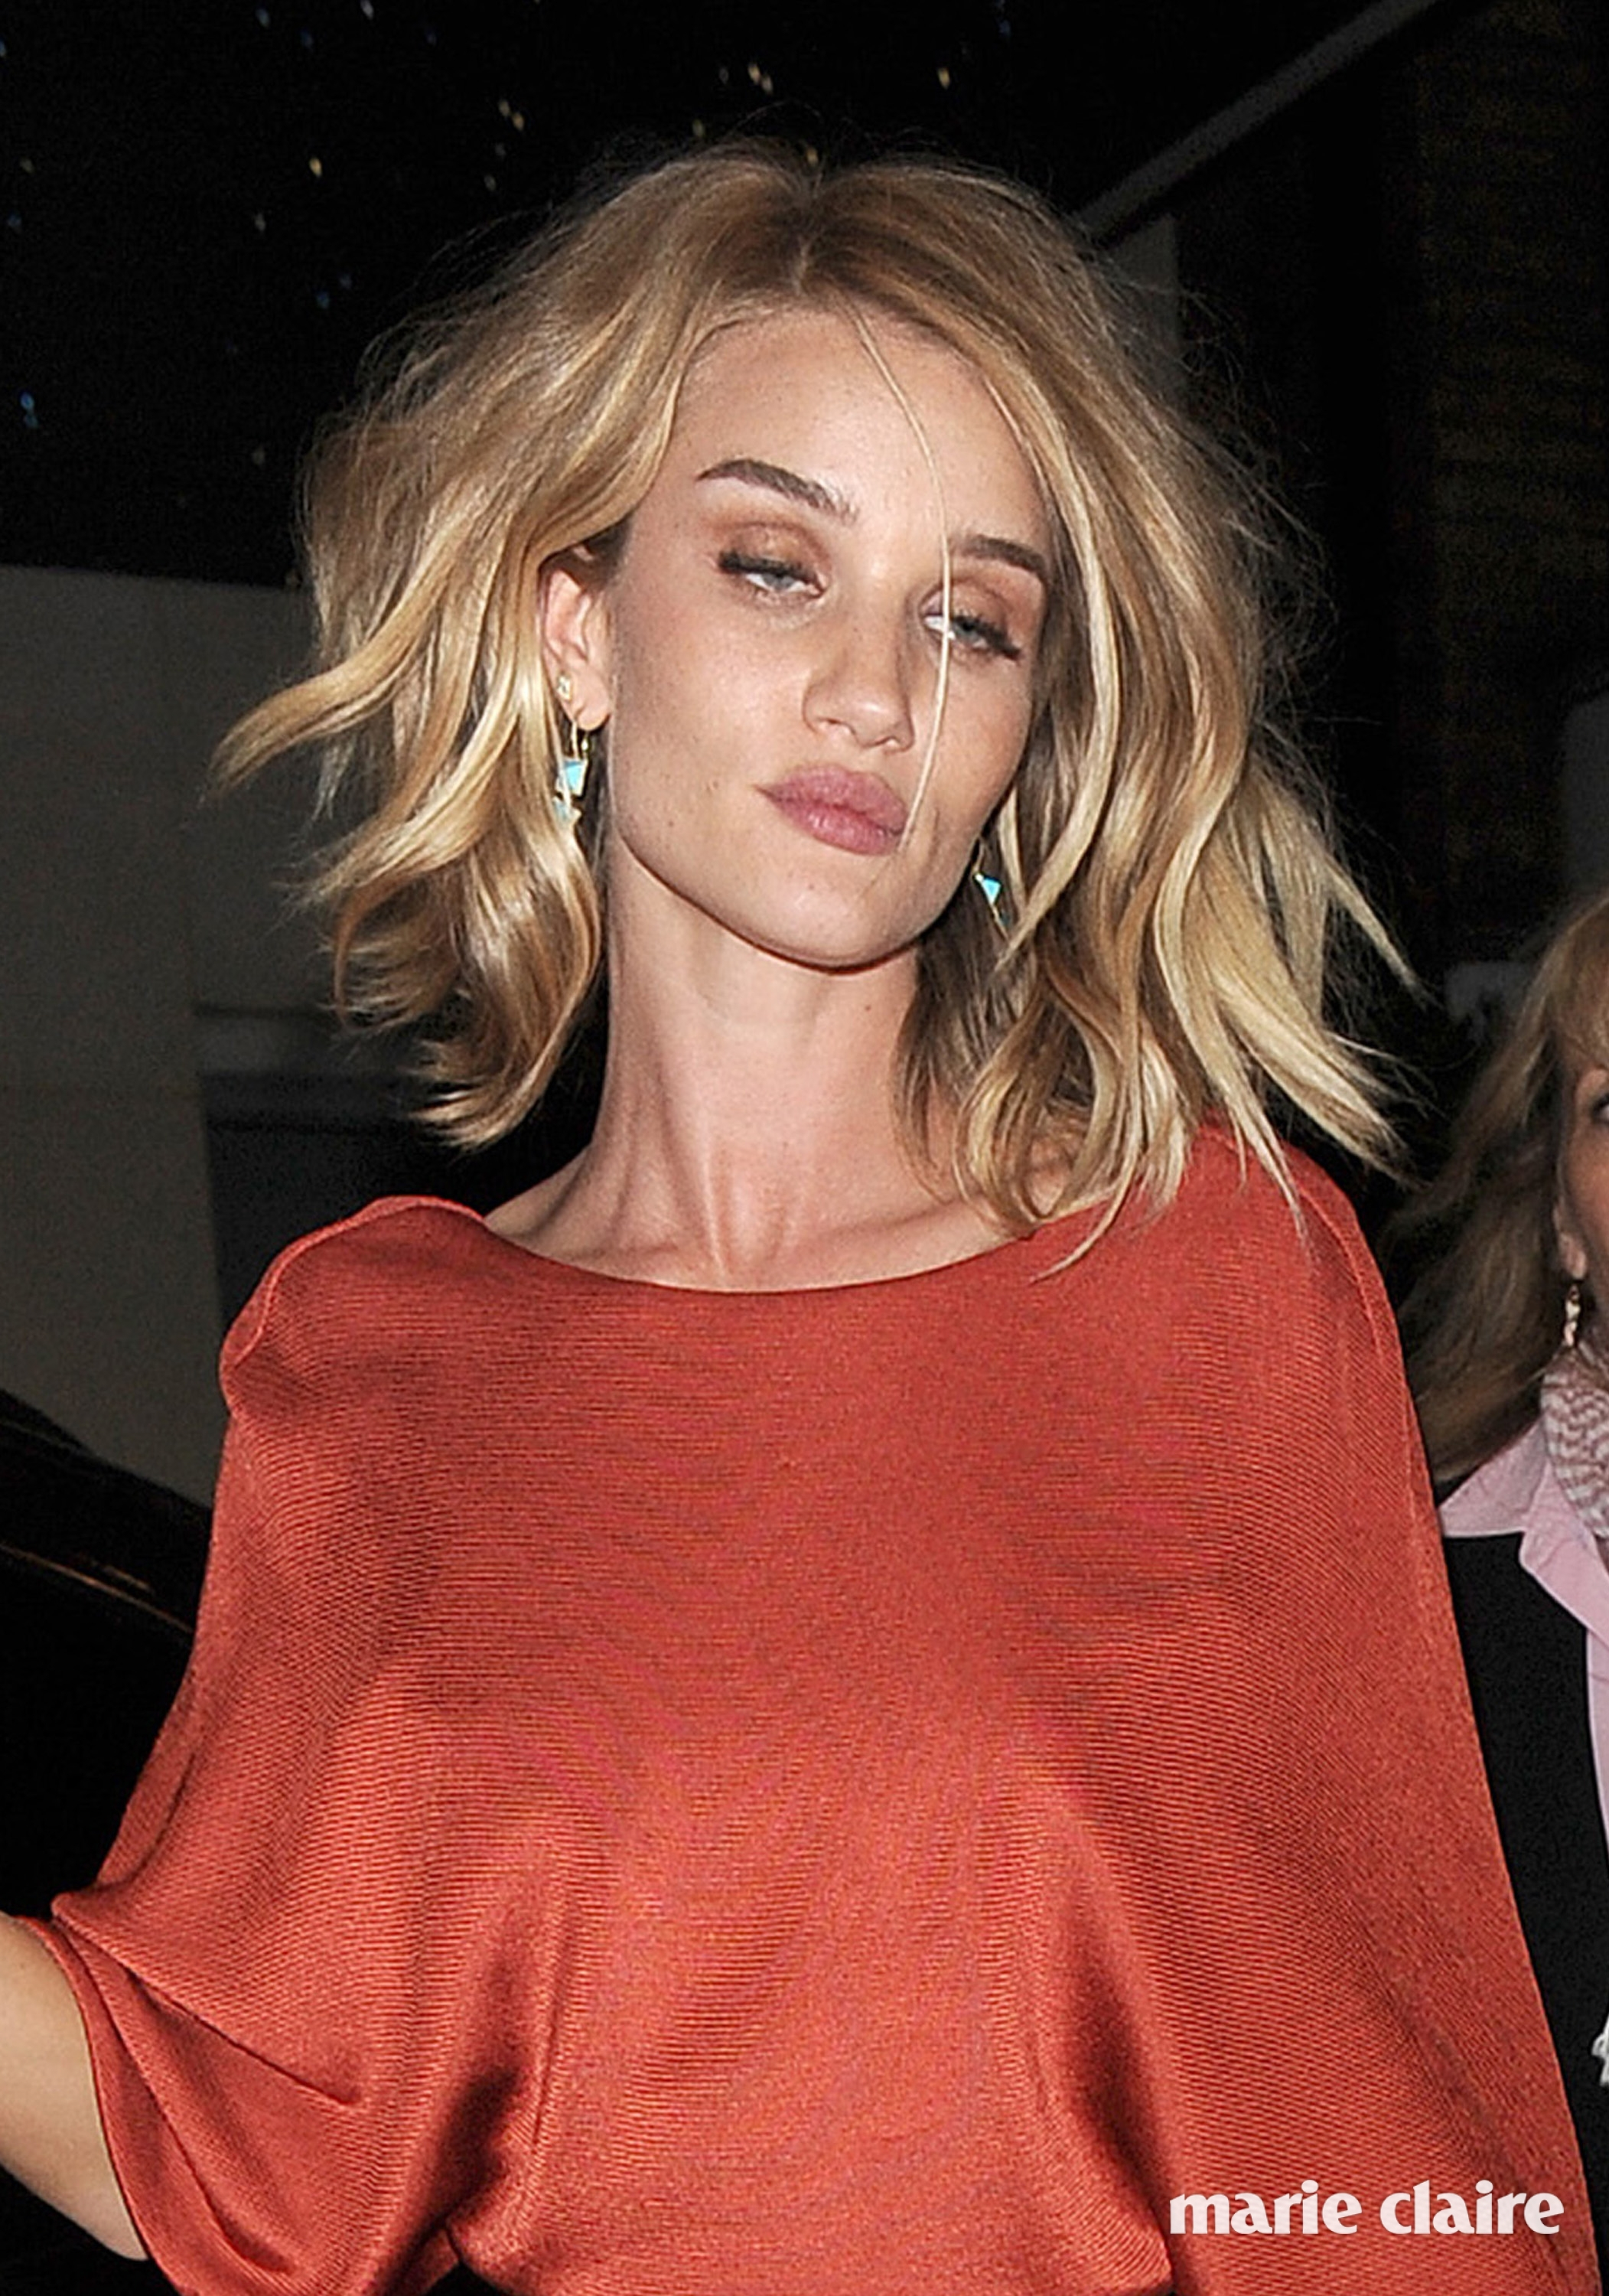 Rosie Huntington-Whiteley appears rather worse for wear, as she leaves a private party and heads back to her hotel. She was helped into her car by security at the venue Featuring: Rosie Huntington-Whiteley Where: London, United Kingdom When: 03 Jun 2015 Credit: Will Alexander/WENN.com